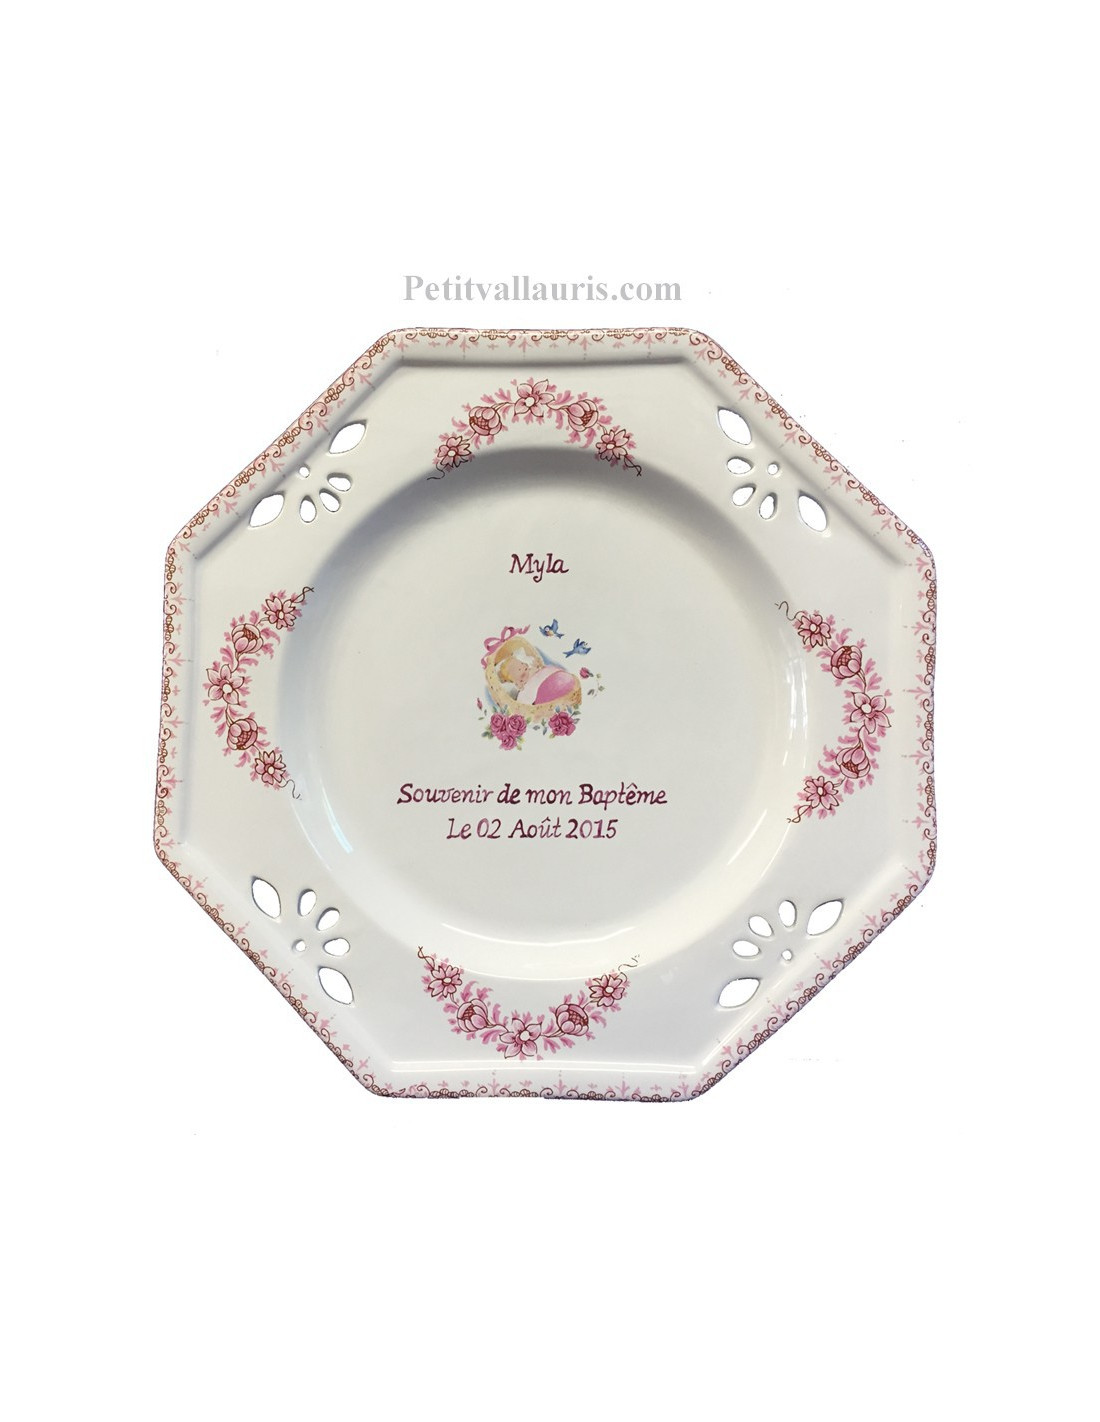 Assiette de bapt me octogonale d cor ange coloris rose for Assiette de decoration